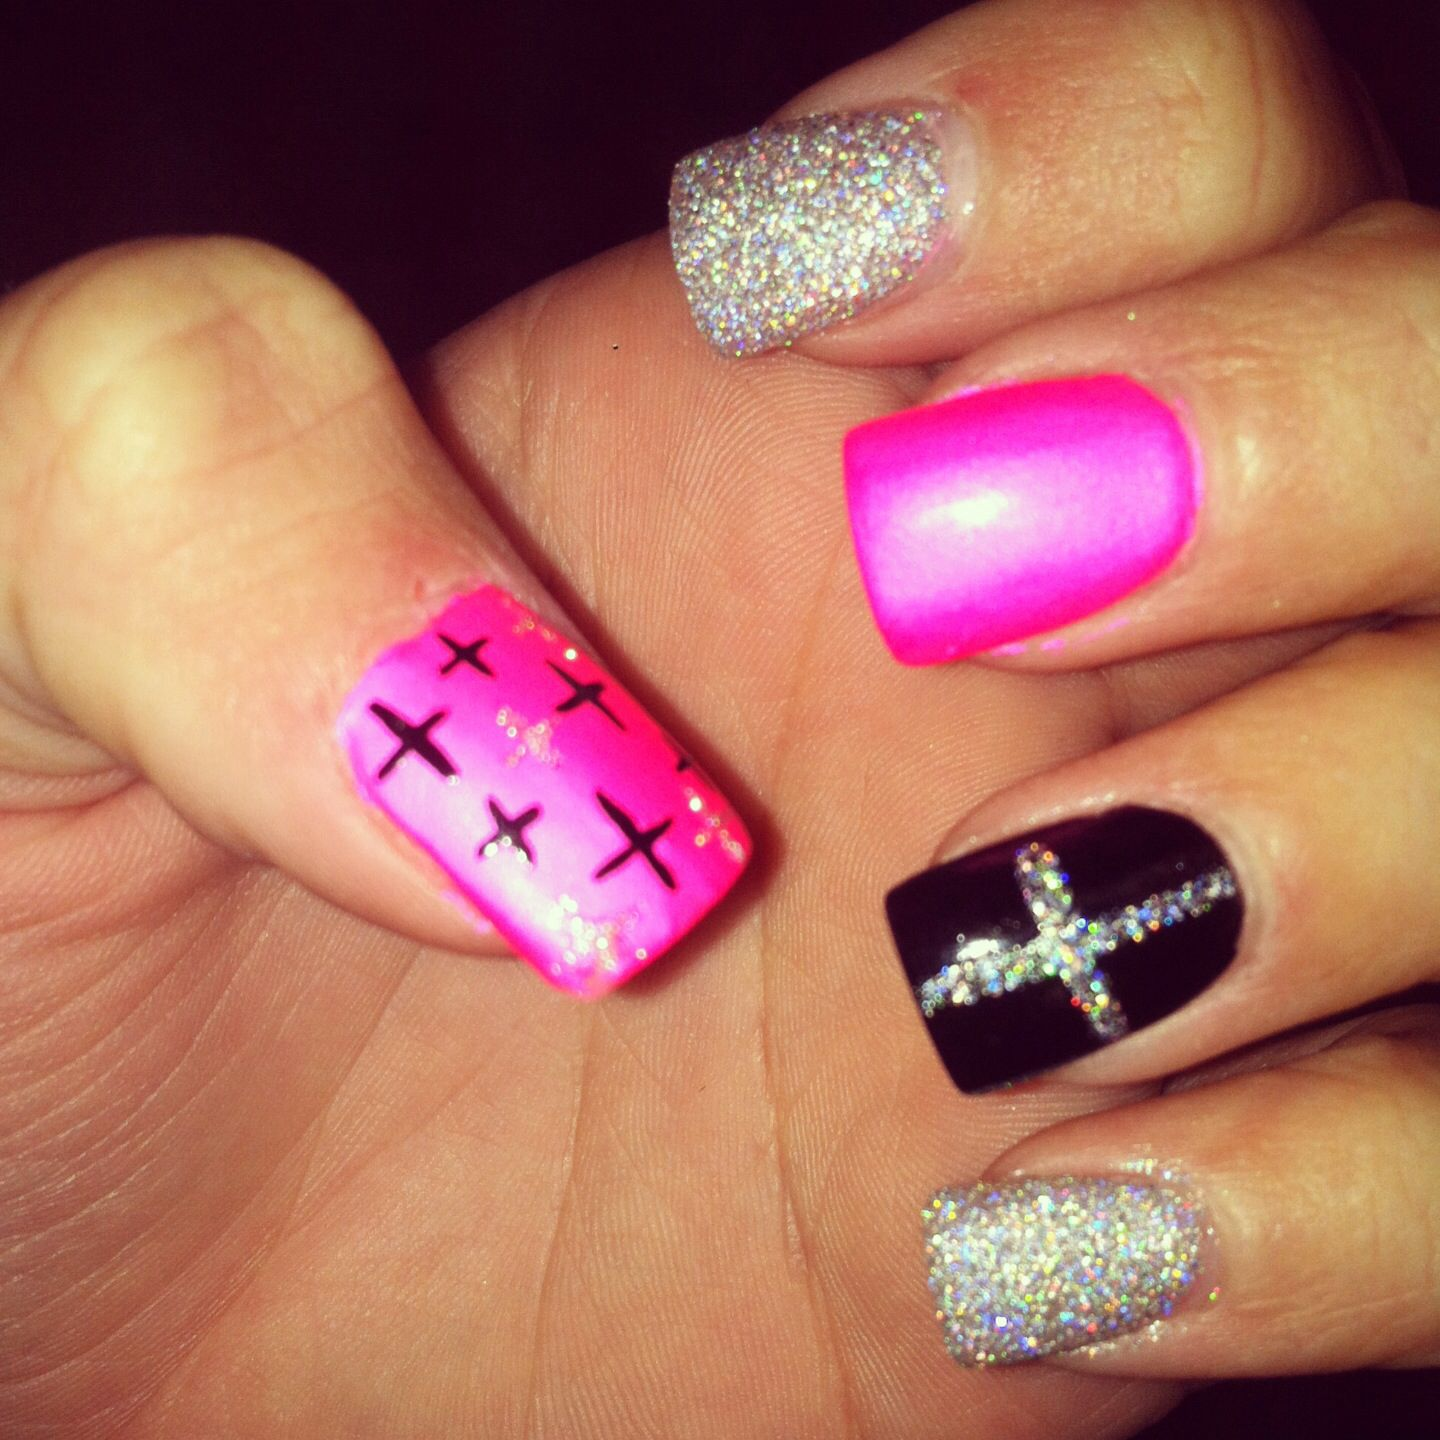 Cross nails | Nails | Pinterest | Cross nails, Nail nail and Makeup